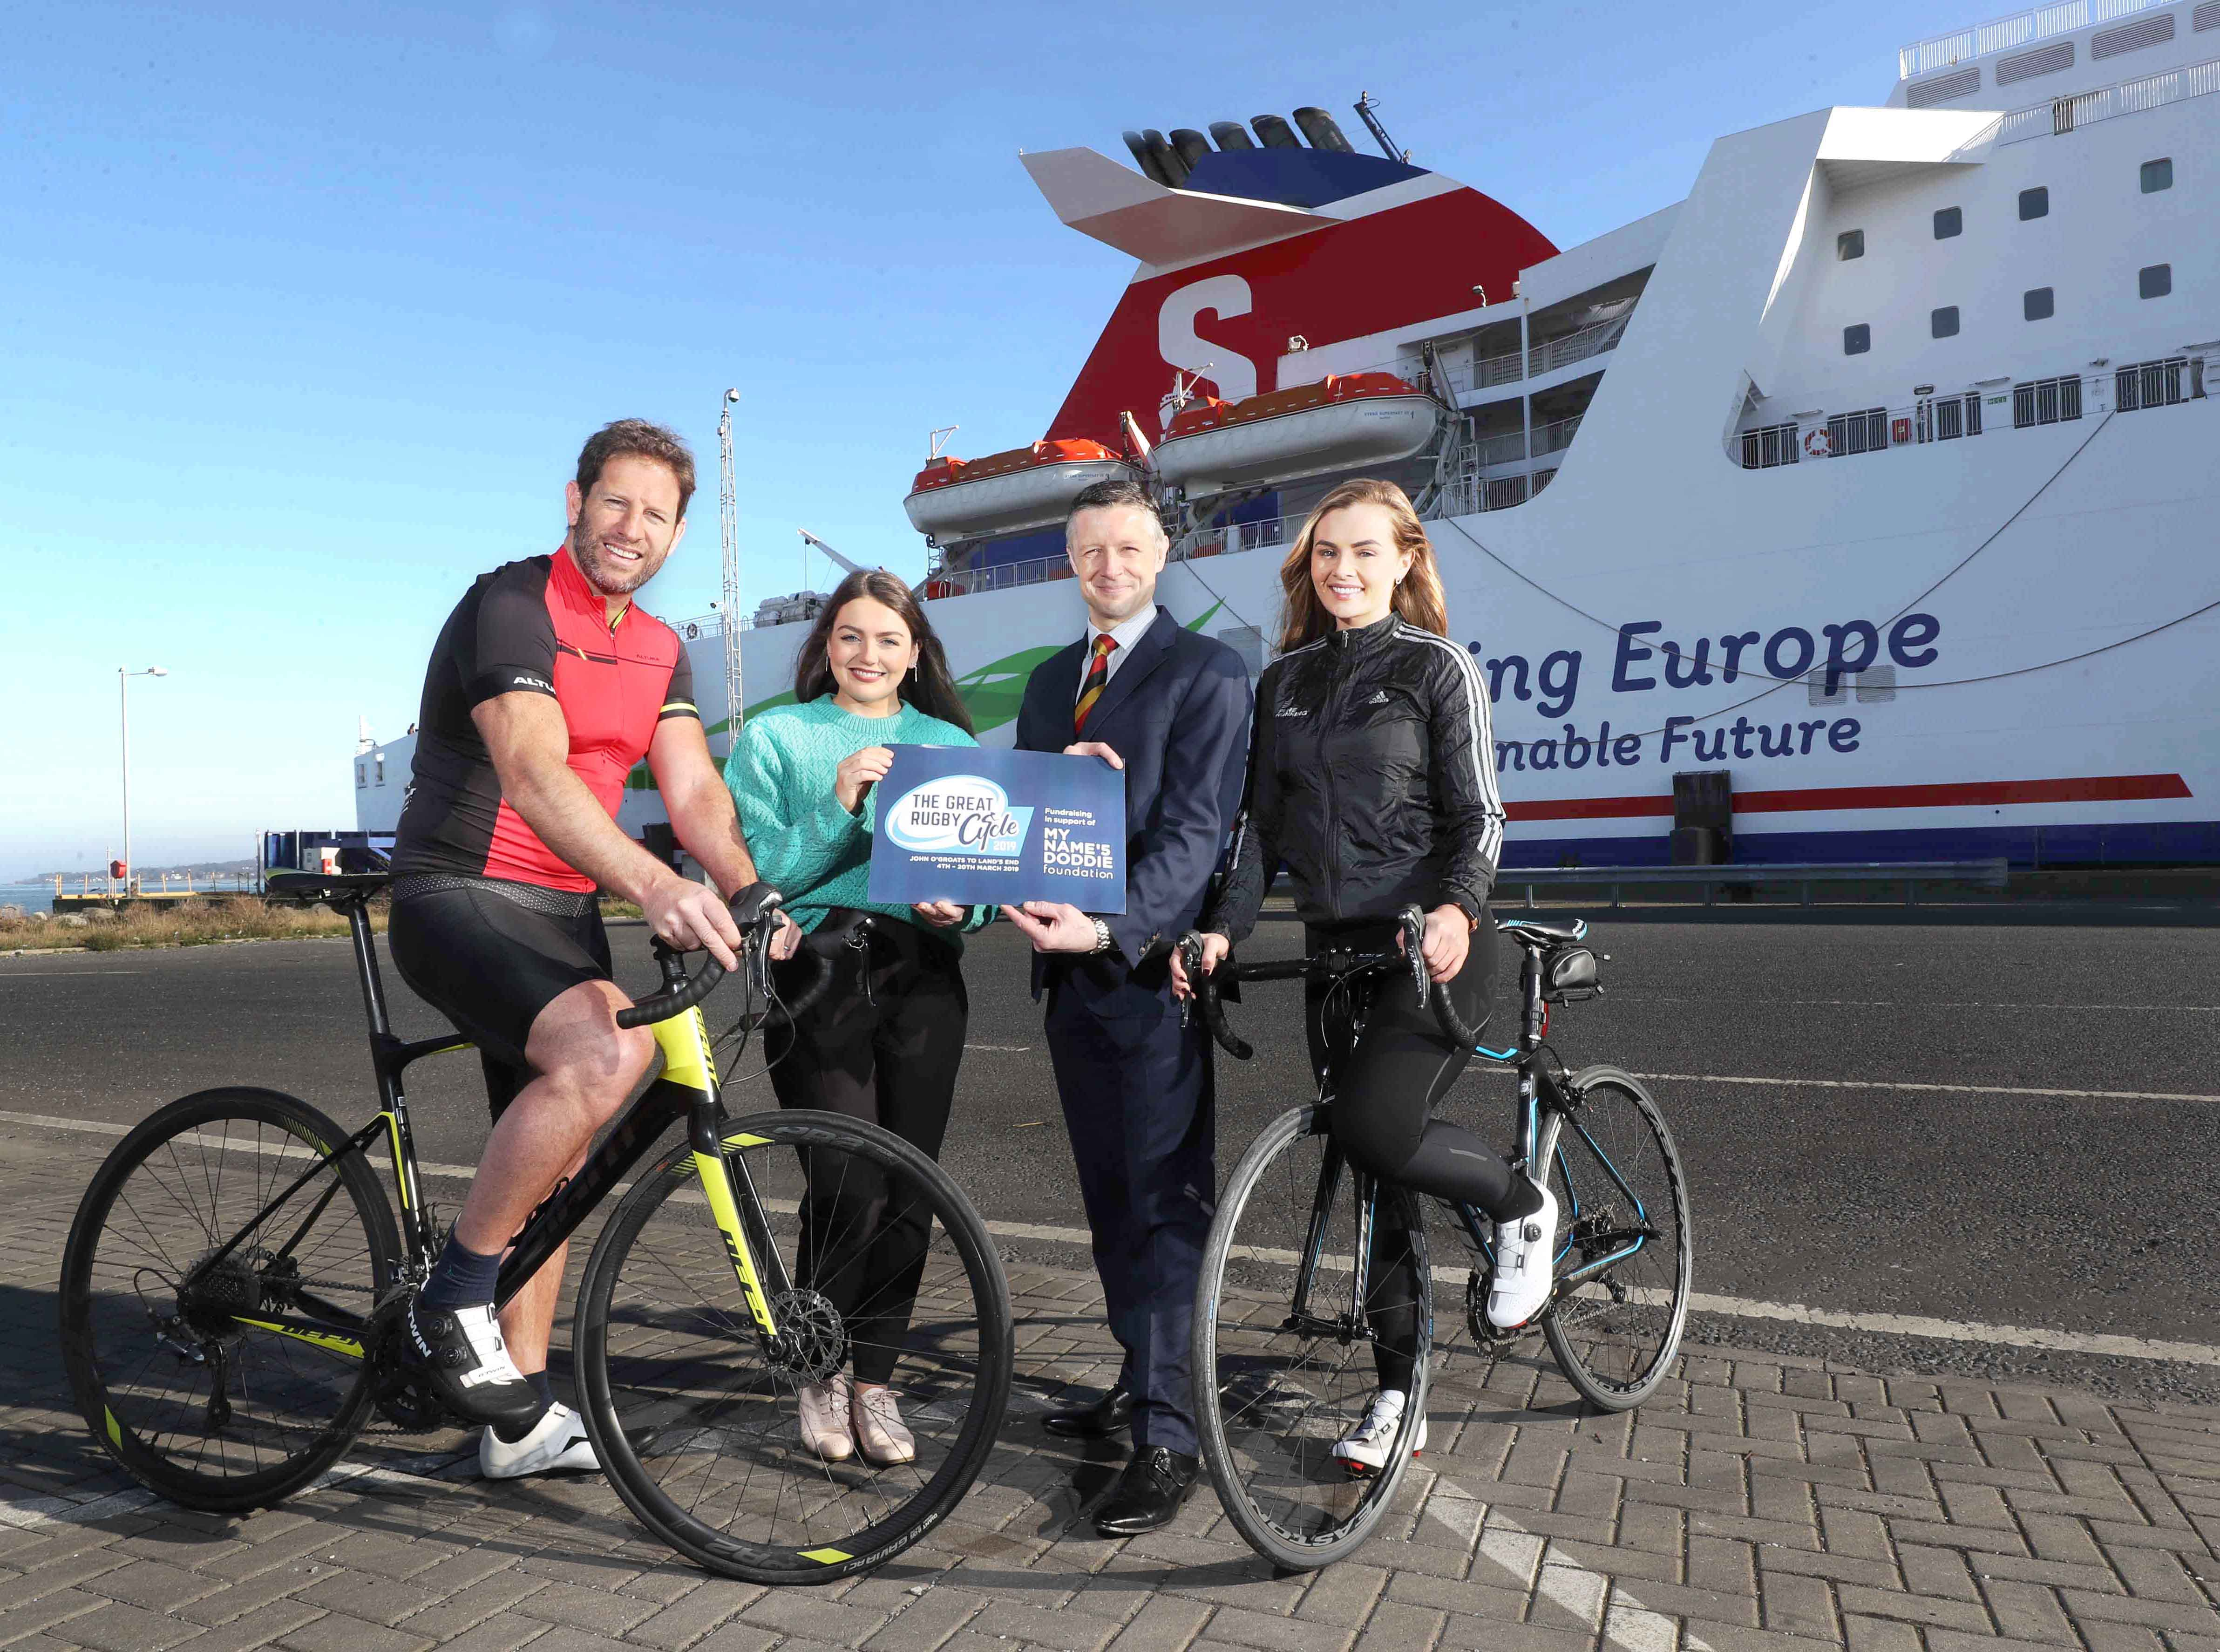 Stena Line Rugby Cycle 002